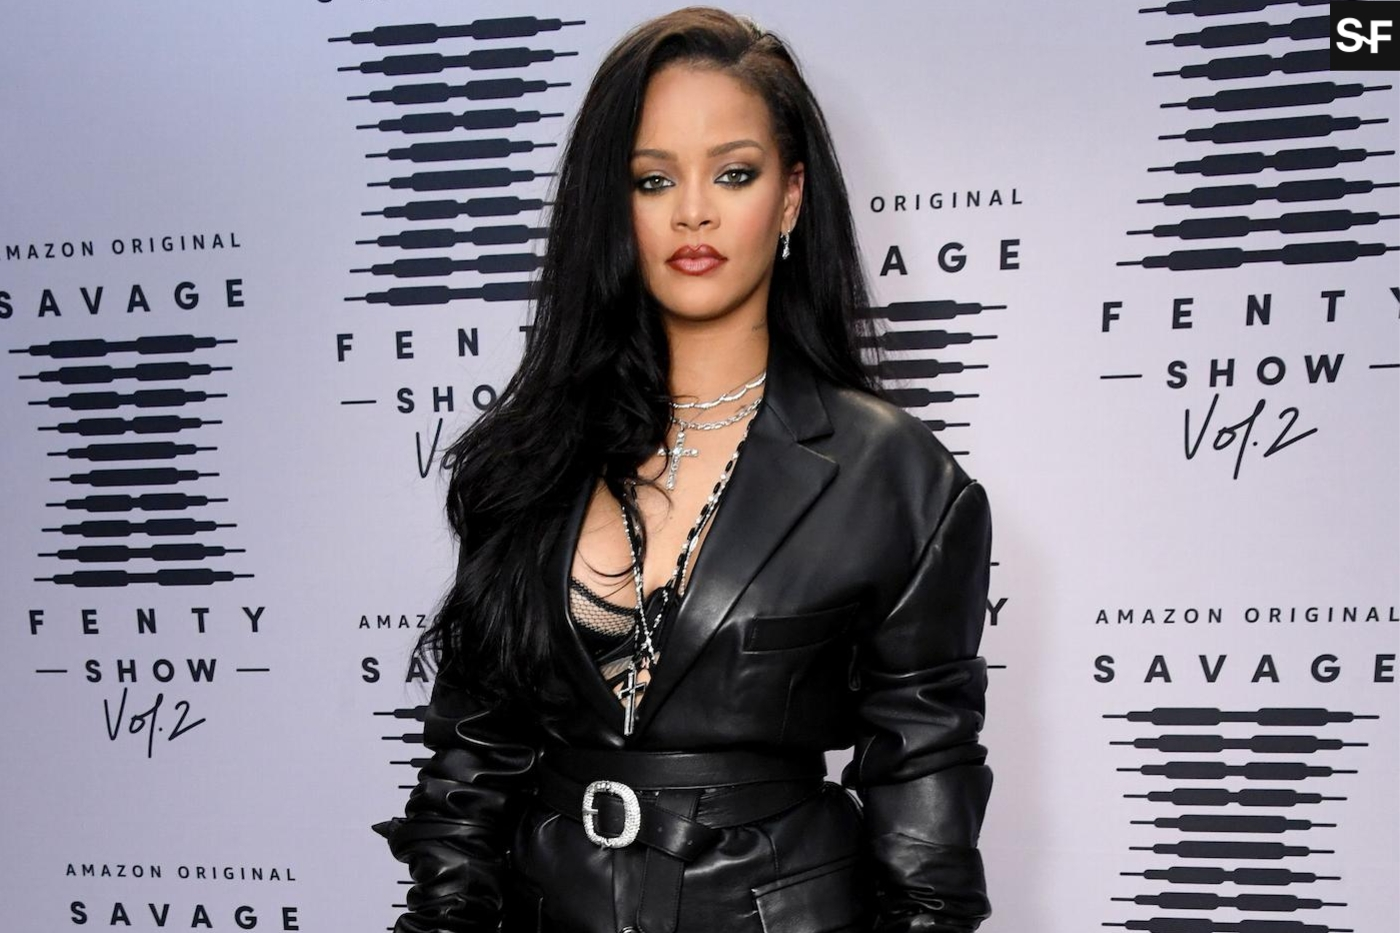 fenty-how-rihanna-took-over-the-fashion-industry